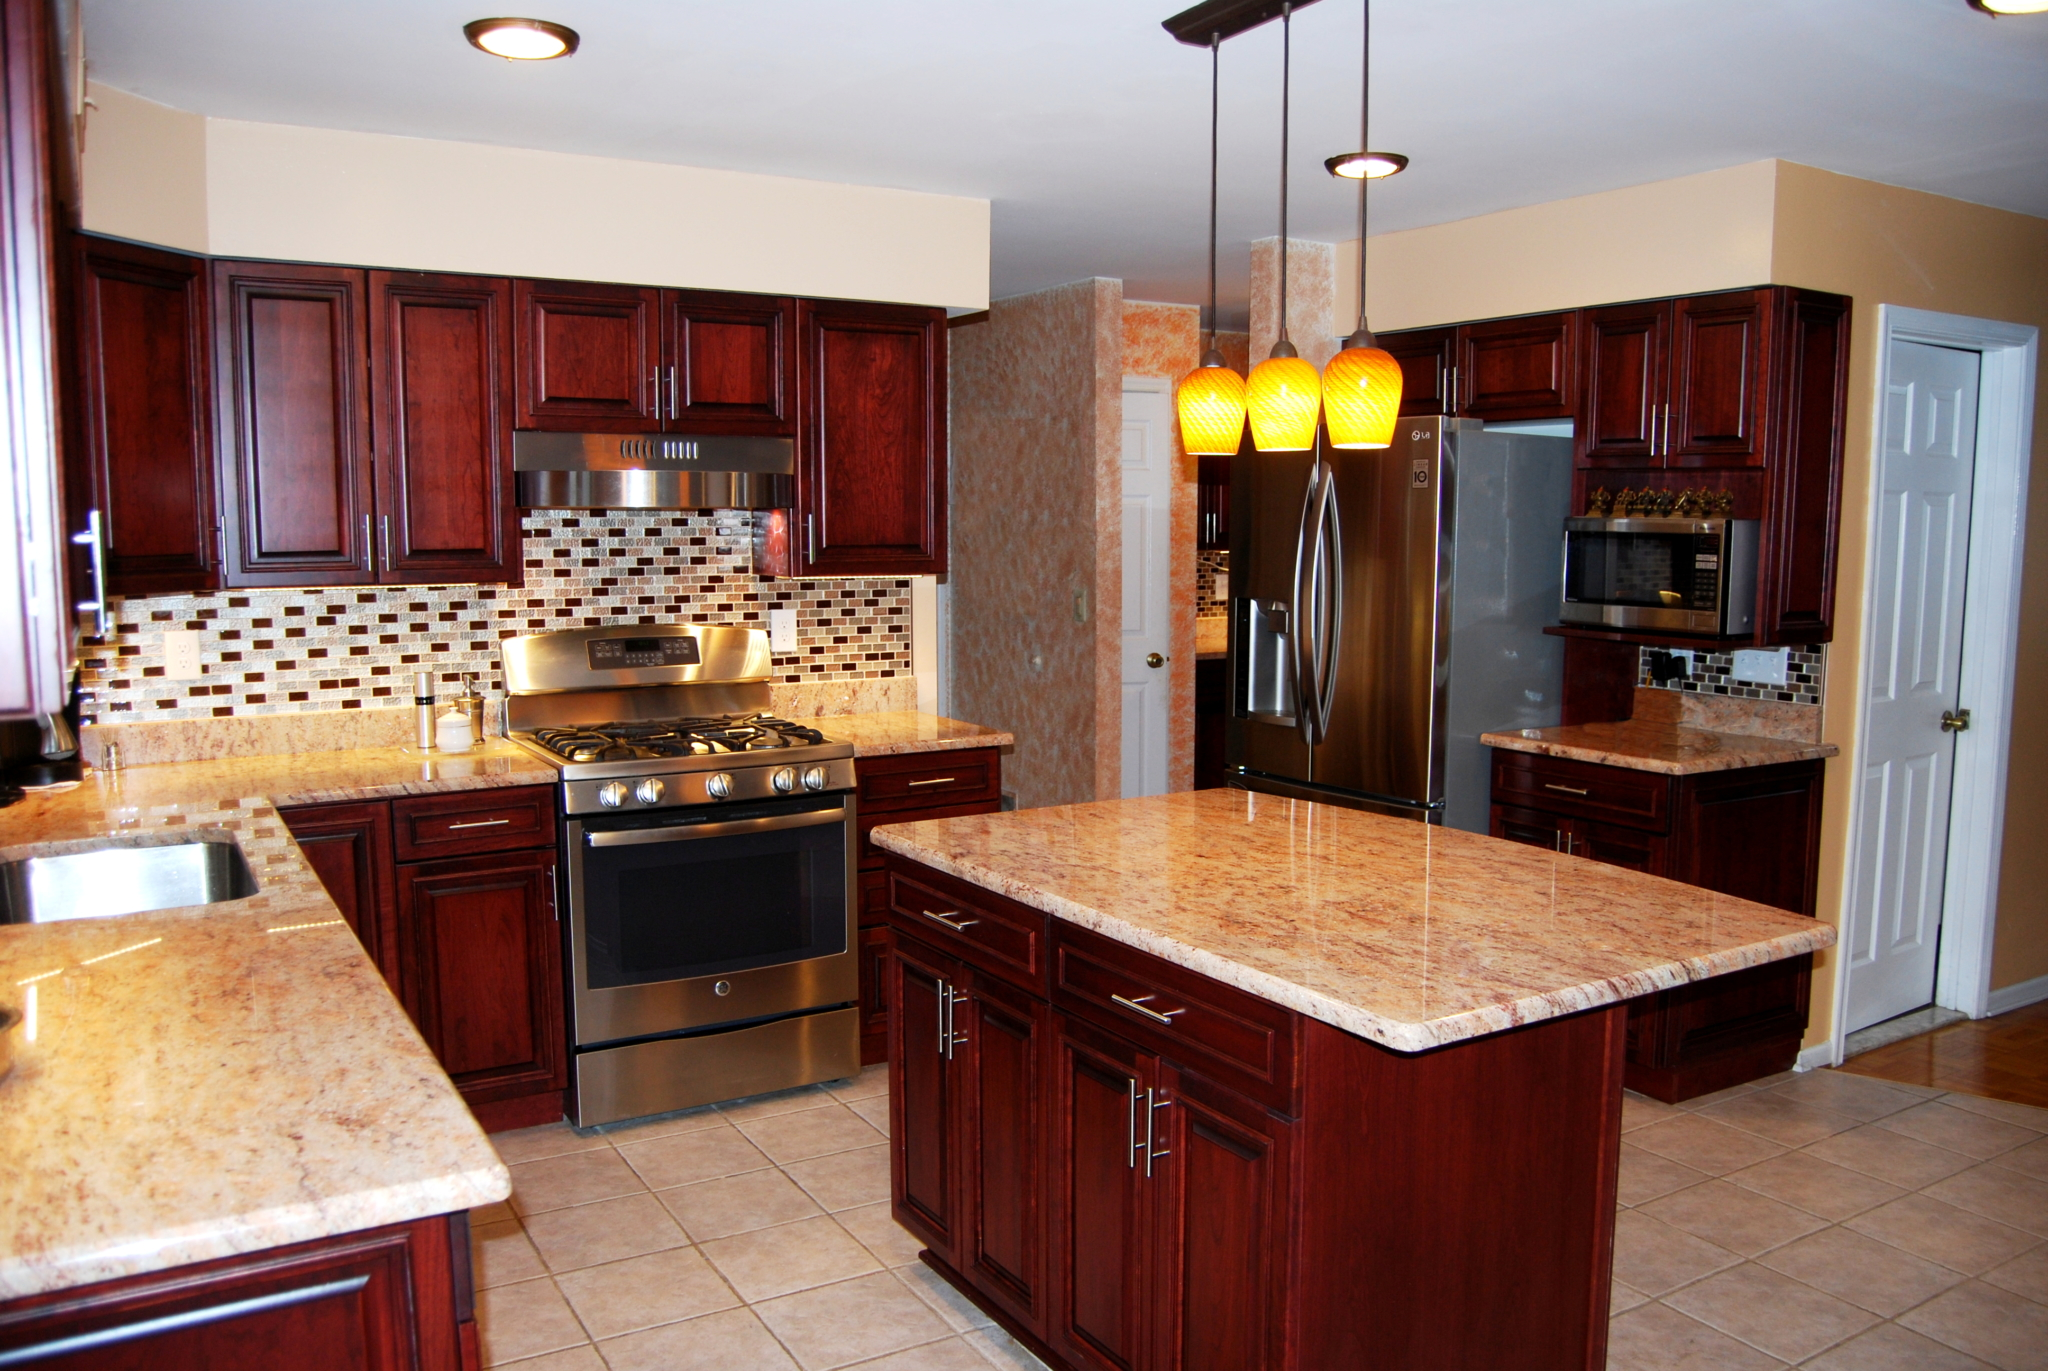 good Basic Kitchen Remodel #1: The Basic Kitchen Co. - remodeled kitchen - January 2015